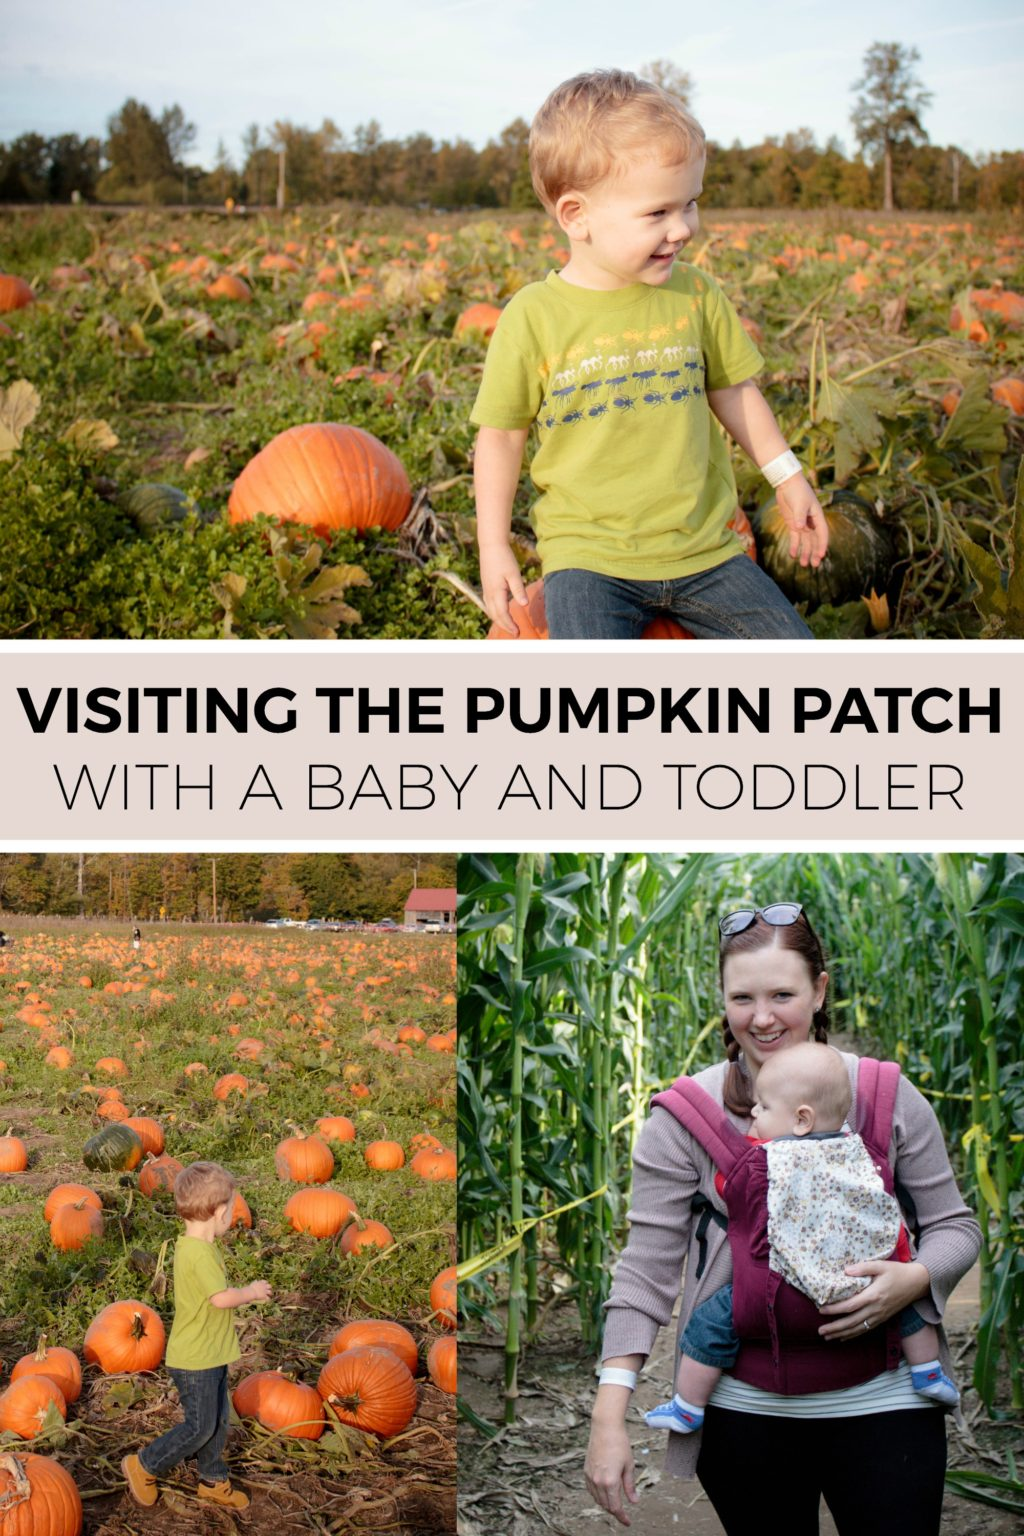 Don't shy away from visiting the pumpkin patch with a toddler and baby!